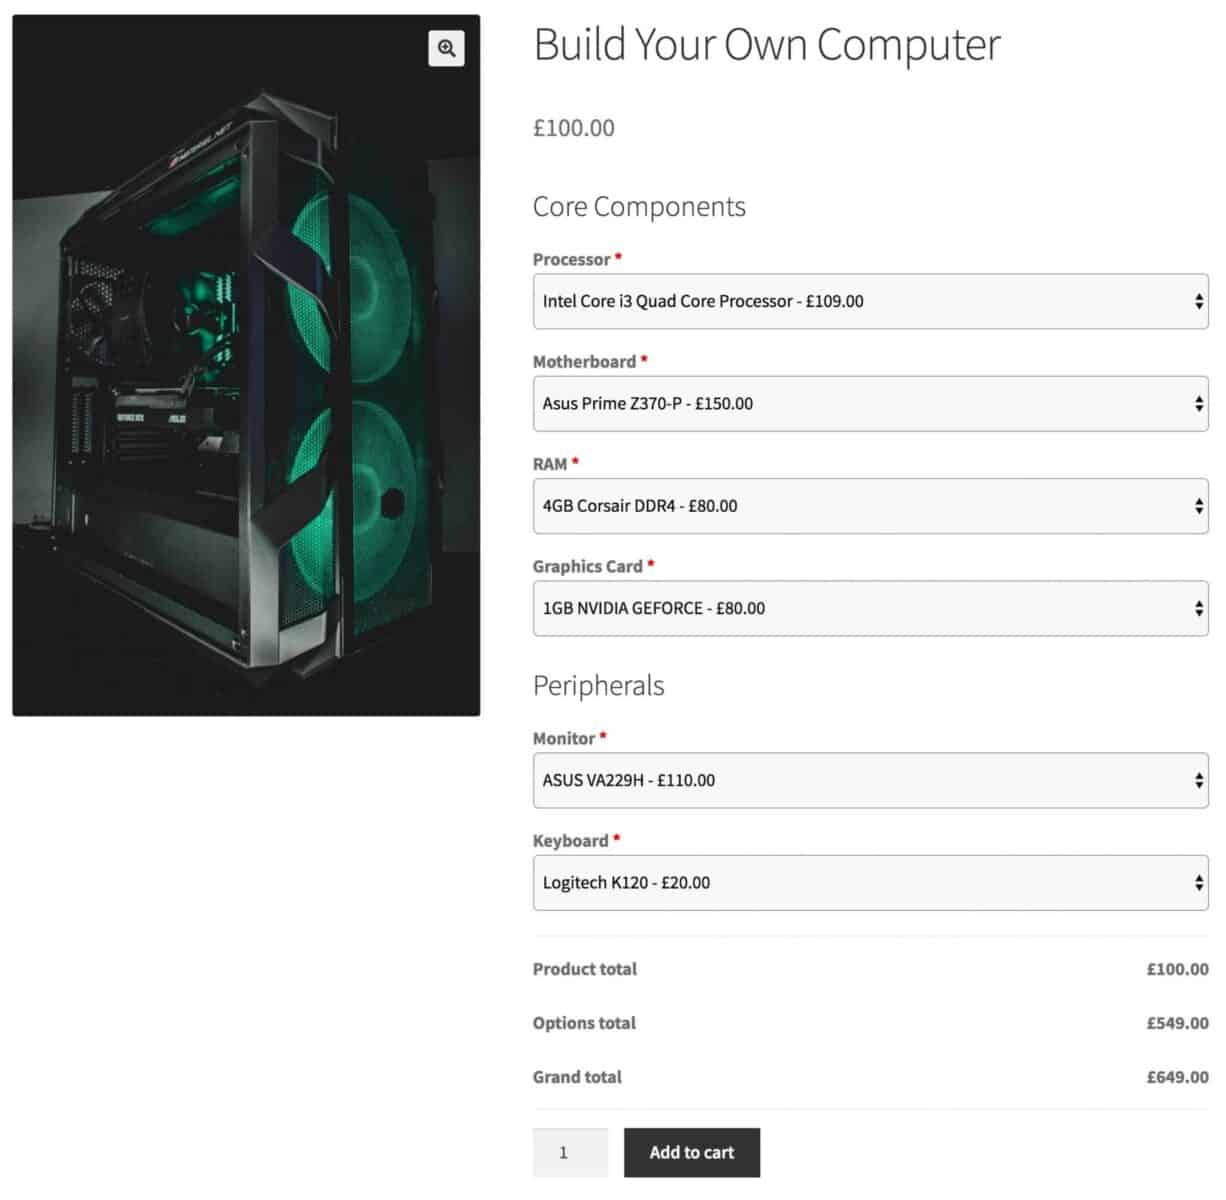 WooCommerce build your own computer product